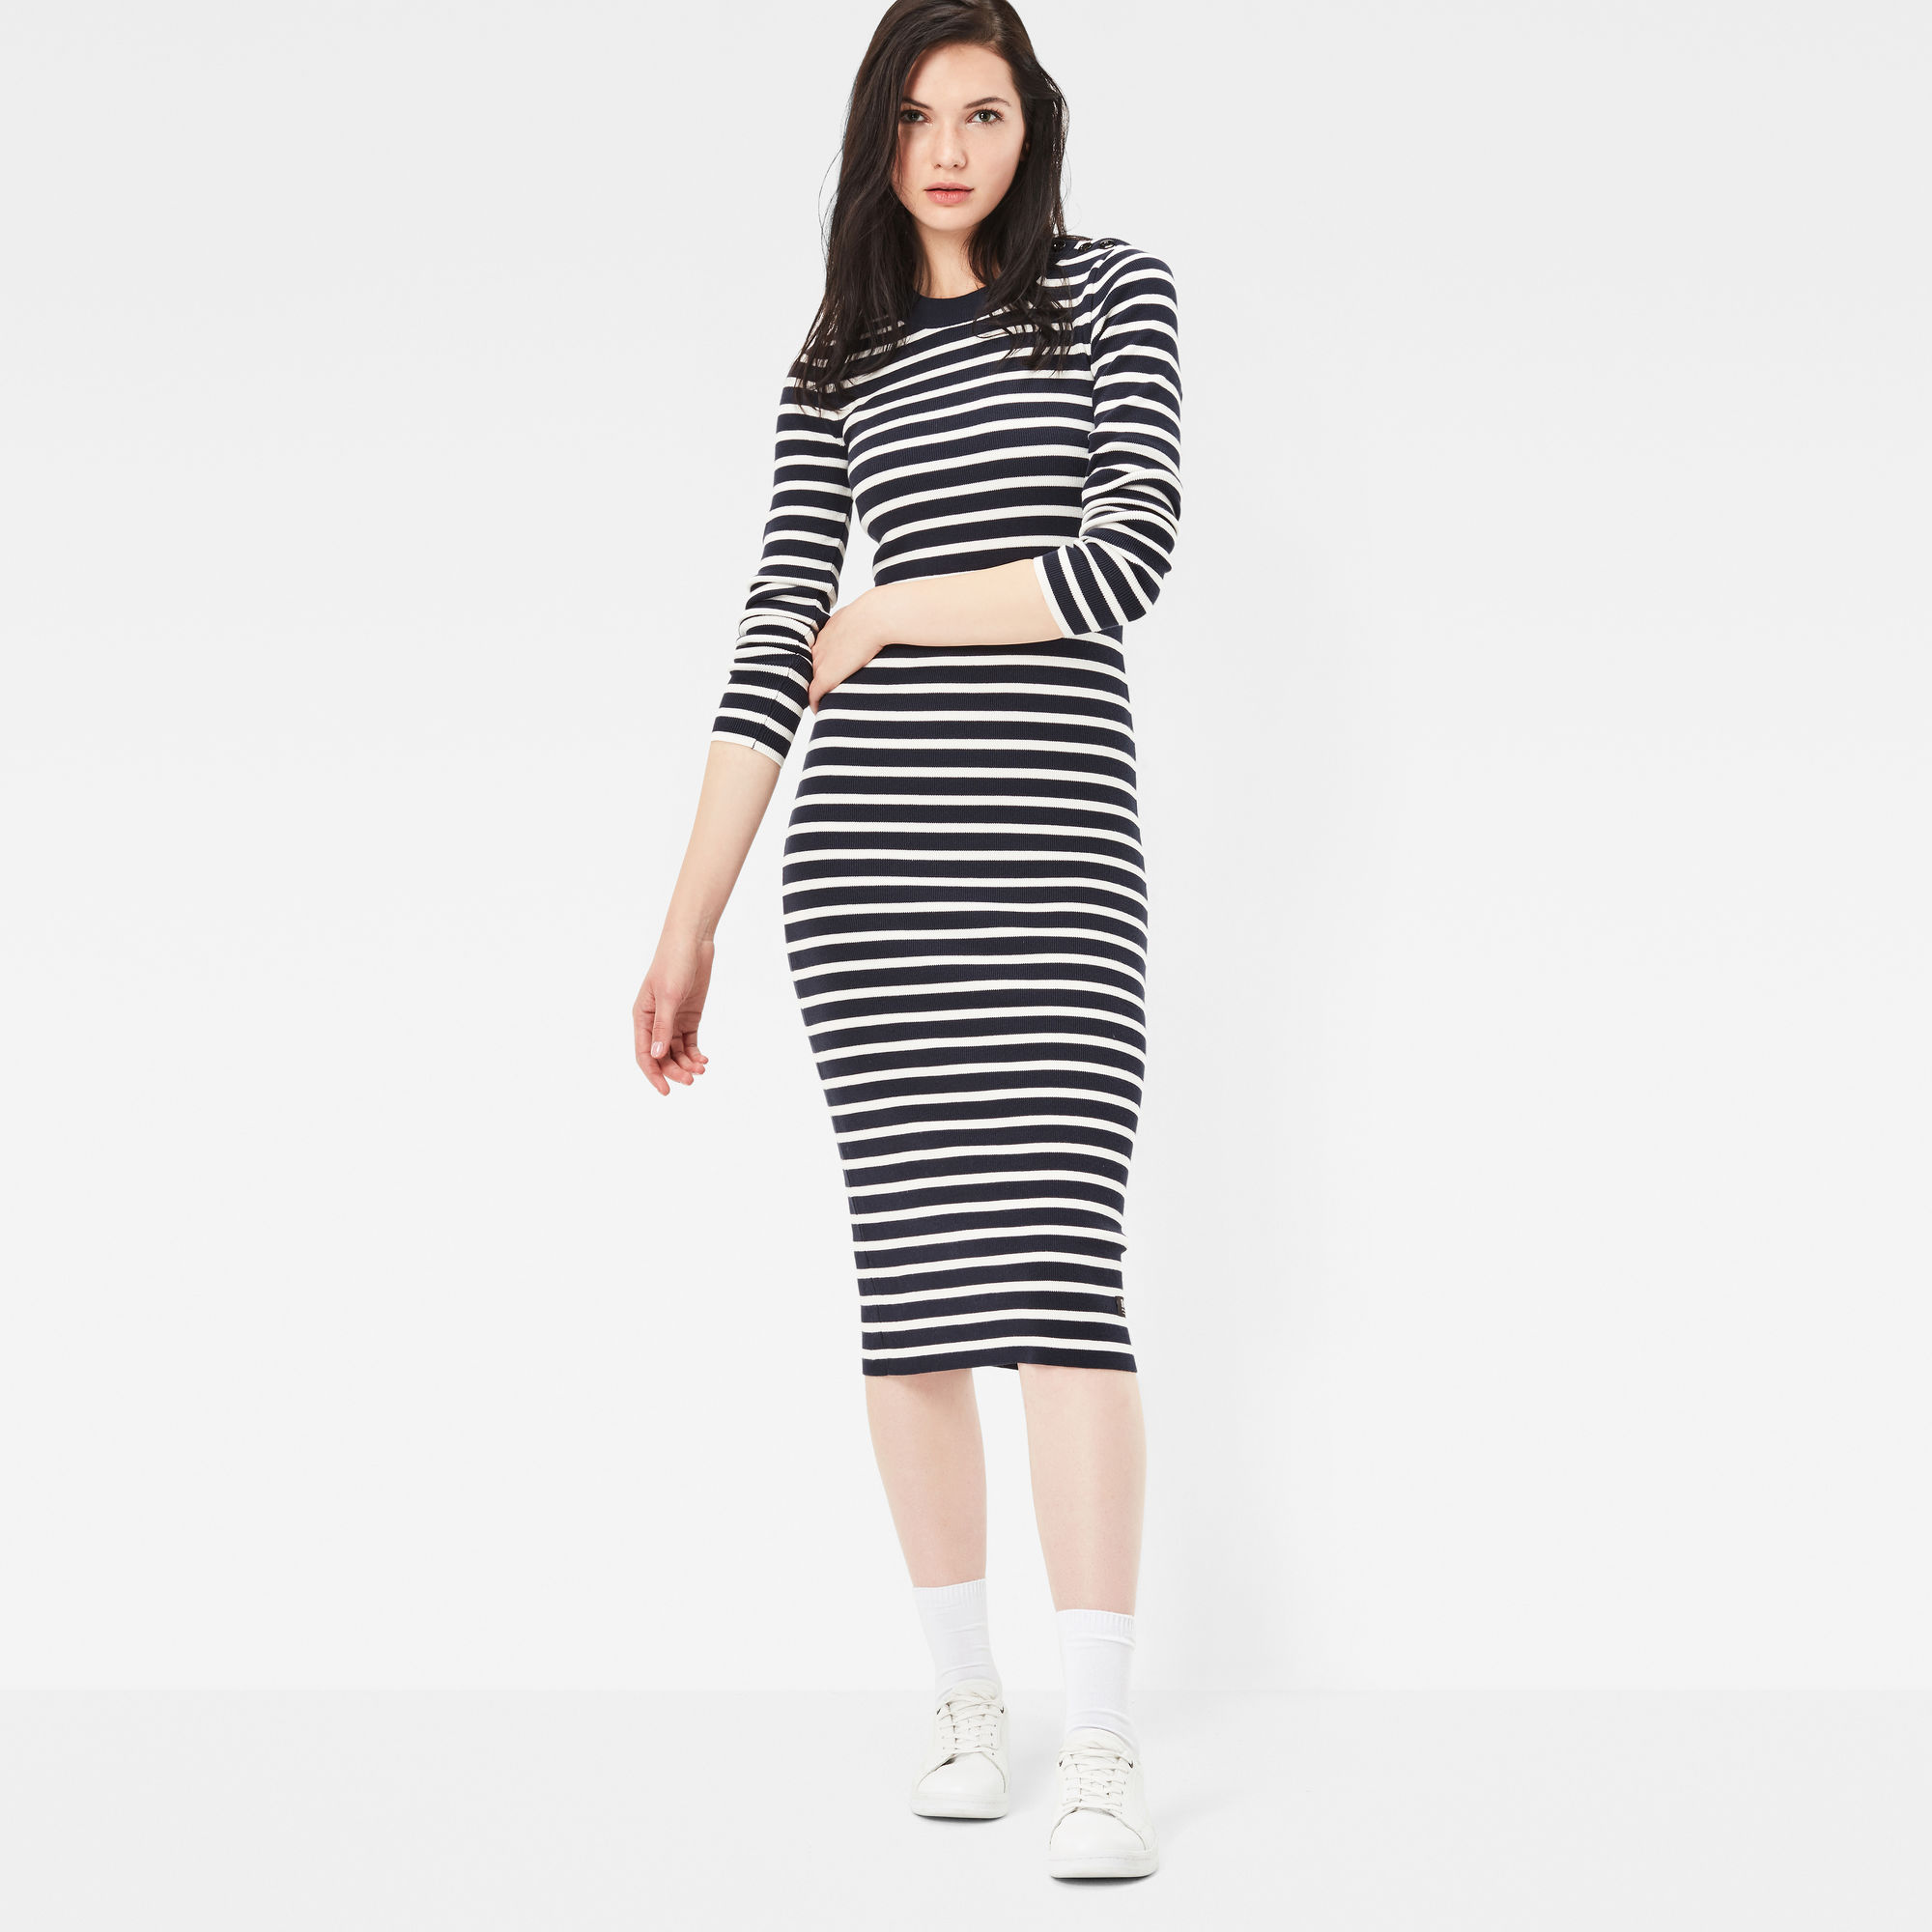 Exly Slim Stripe Knit Dress